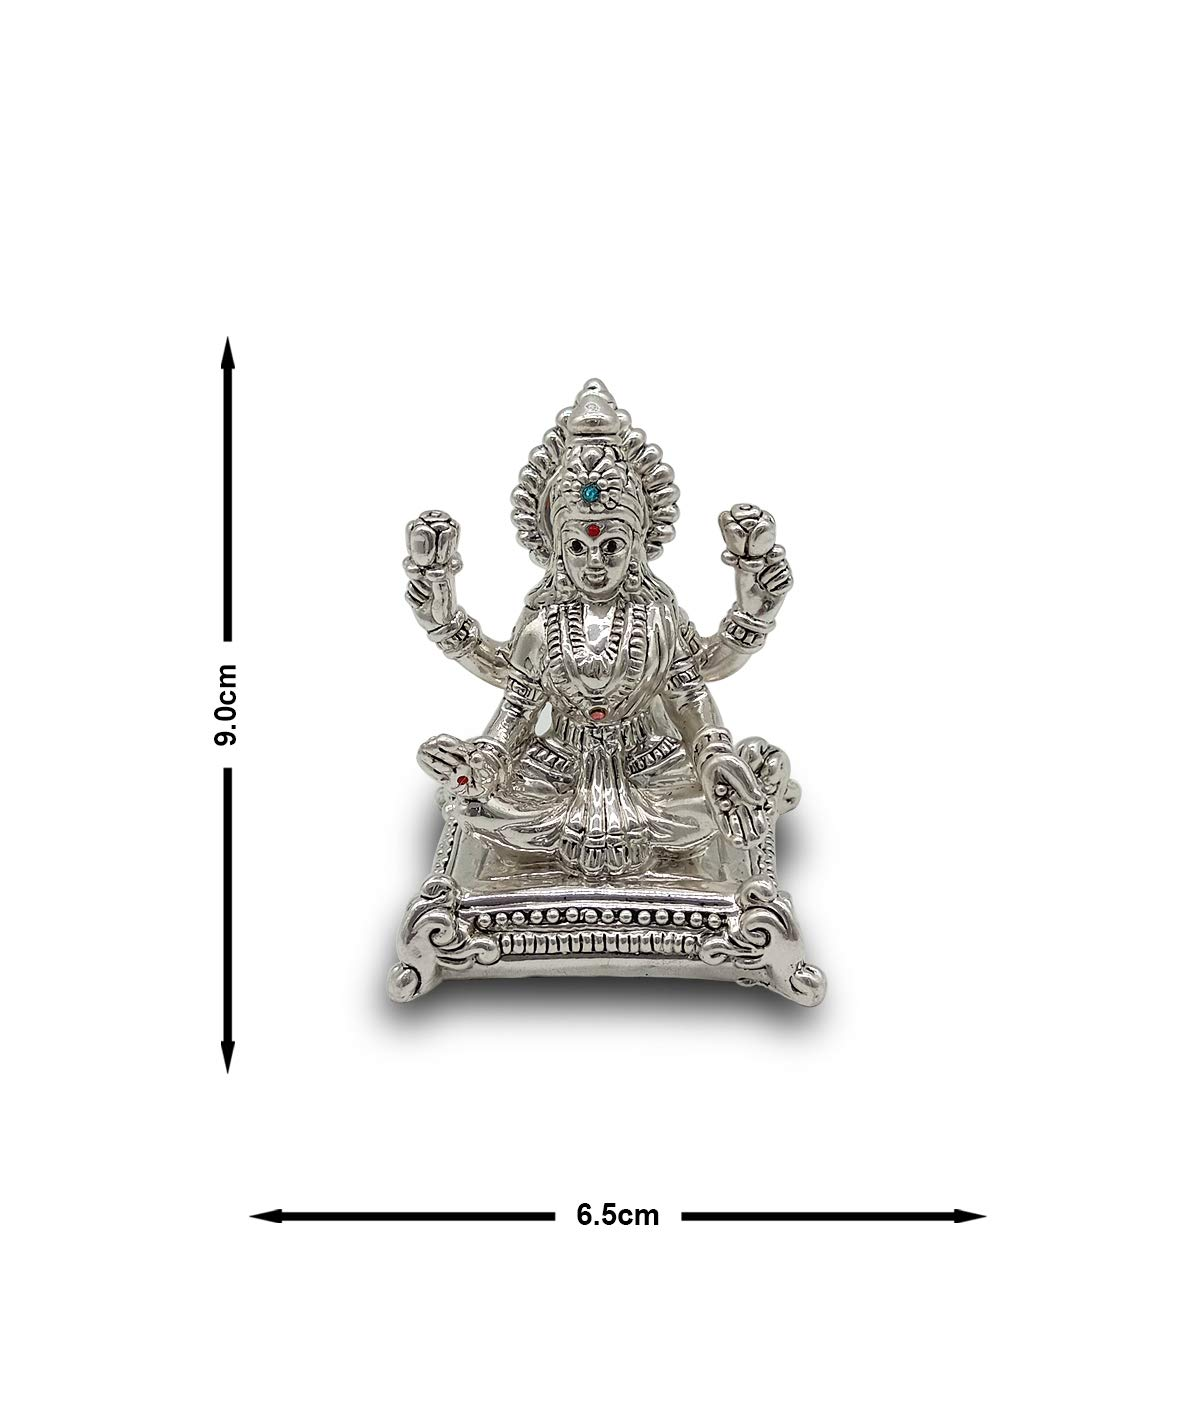 Silver Lakshmi/Laxmi Idol 40gm 999 Purity